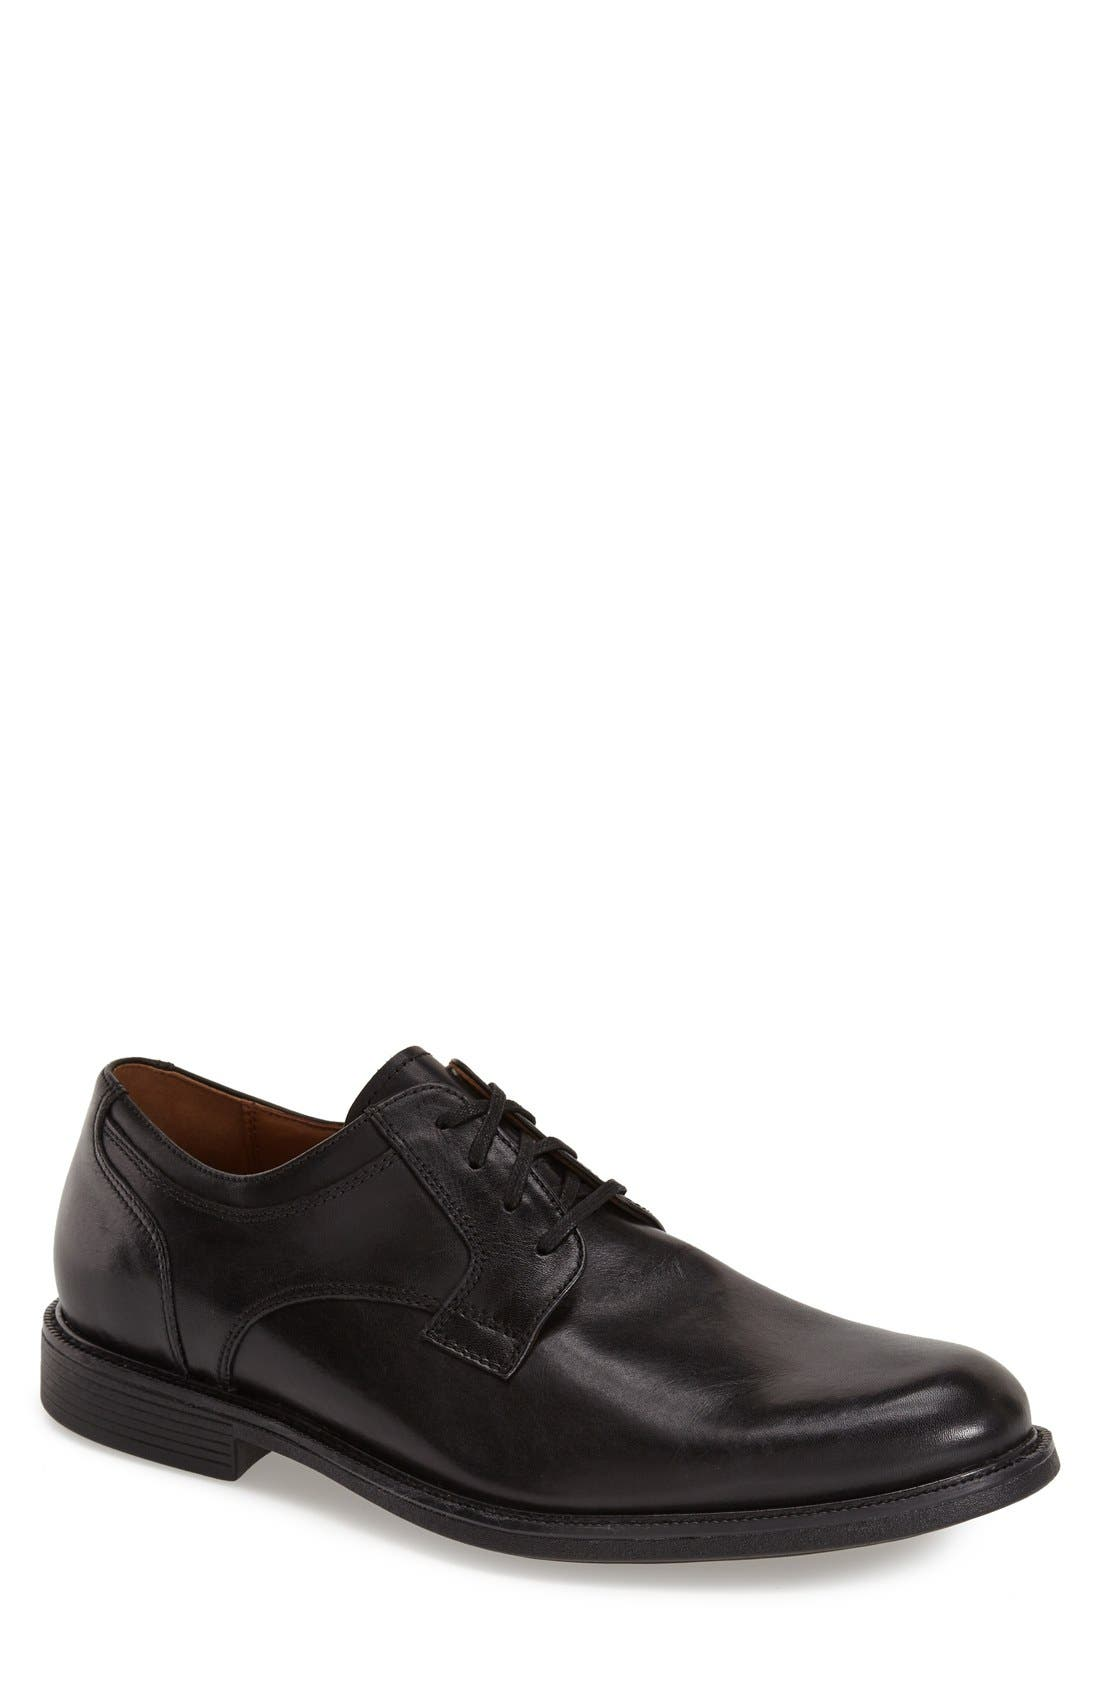 'Cardell' Plain Toe Derby,                             Main thumbnail 1, color,                             Black Leather